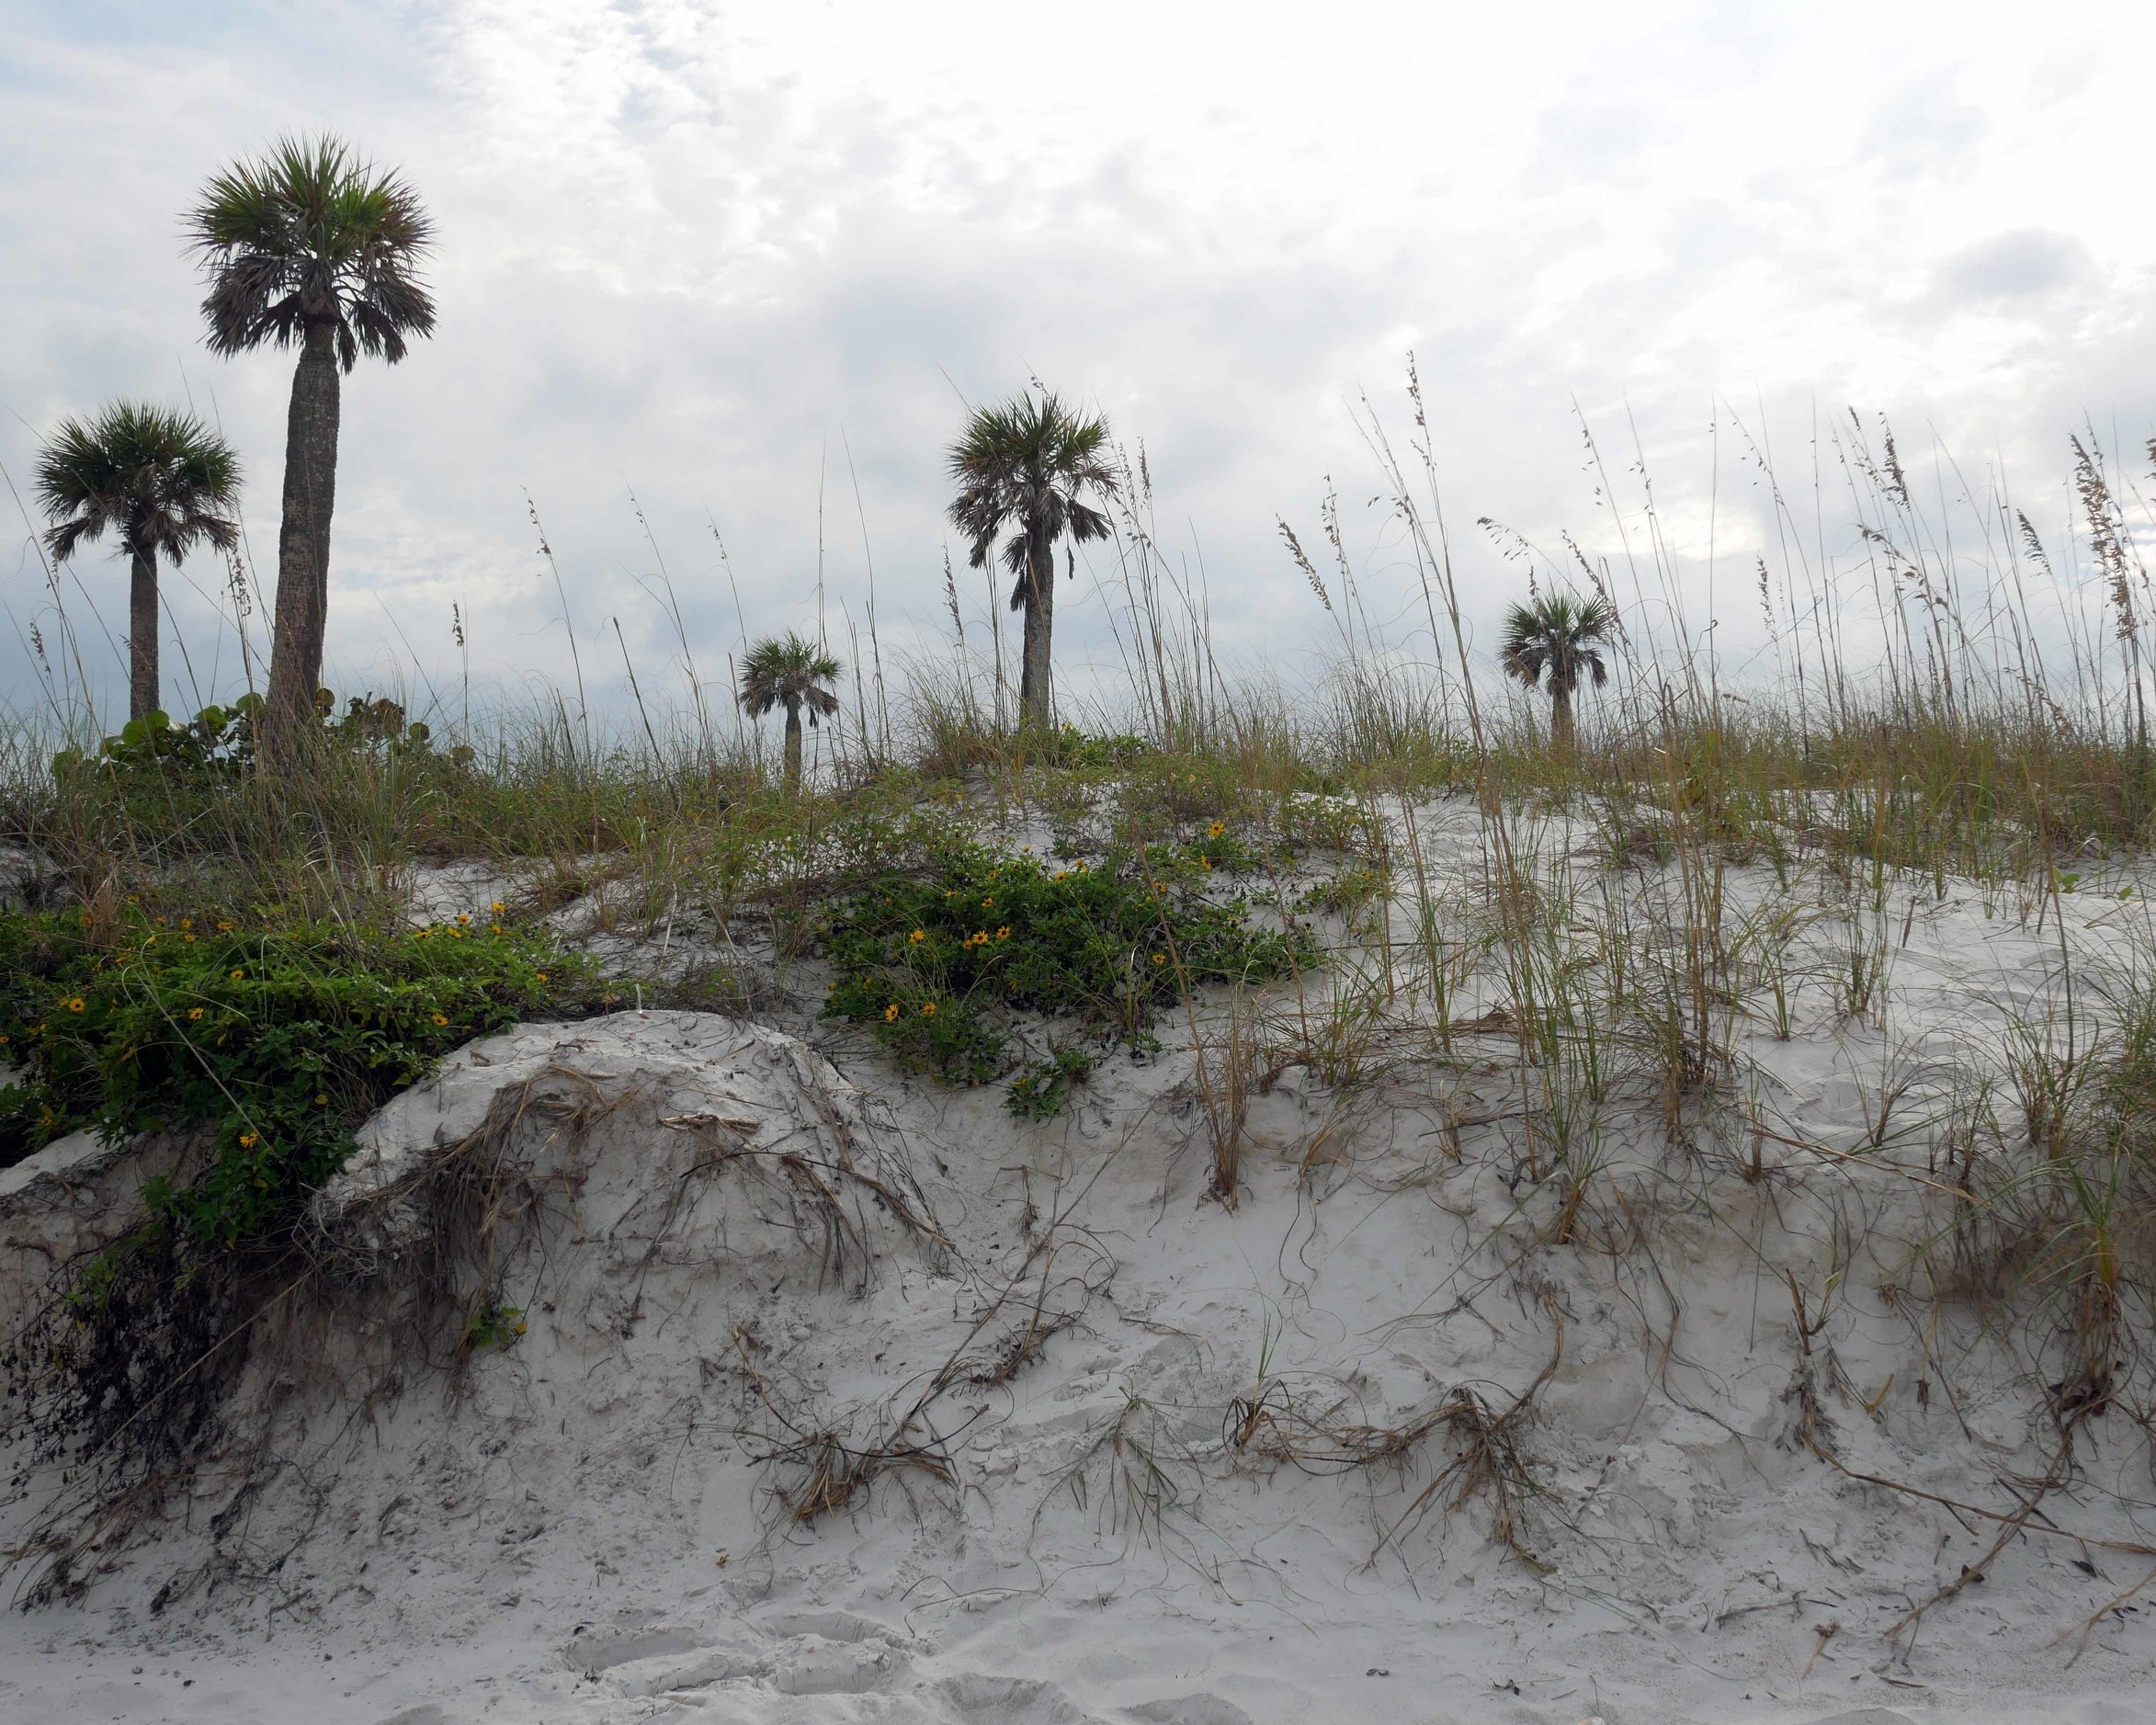 The sand dunes, a requisite feature of Tampa's best beaches